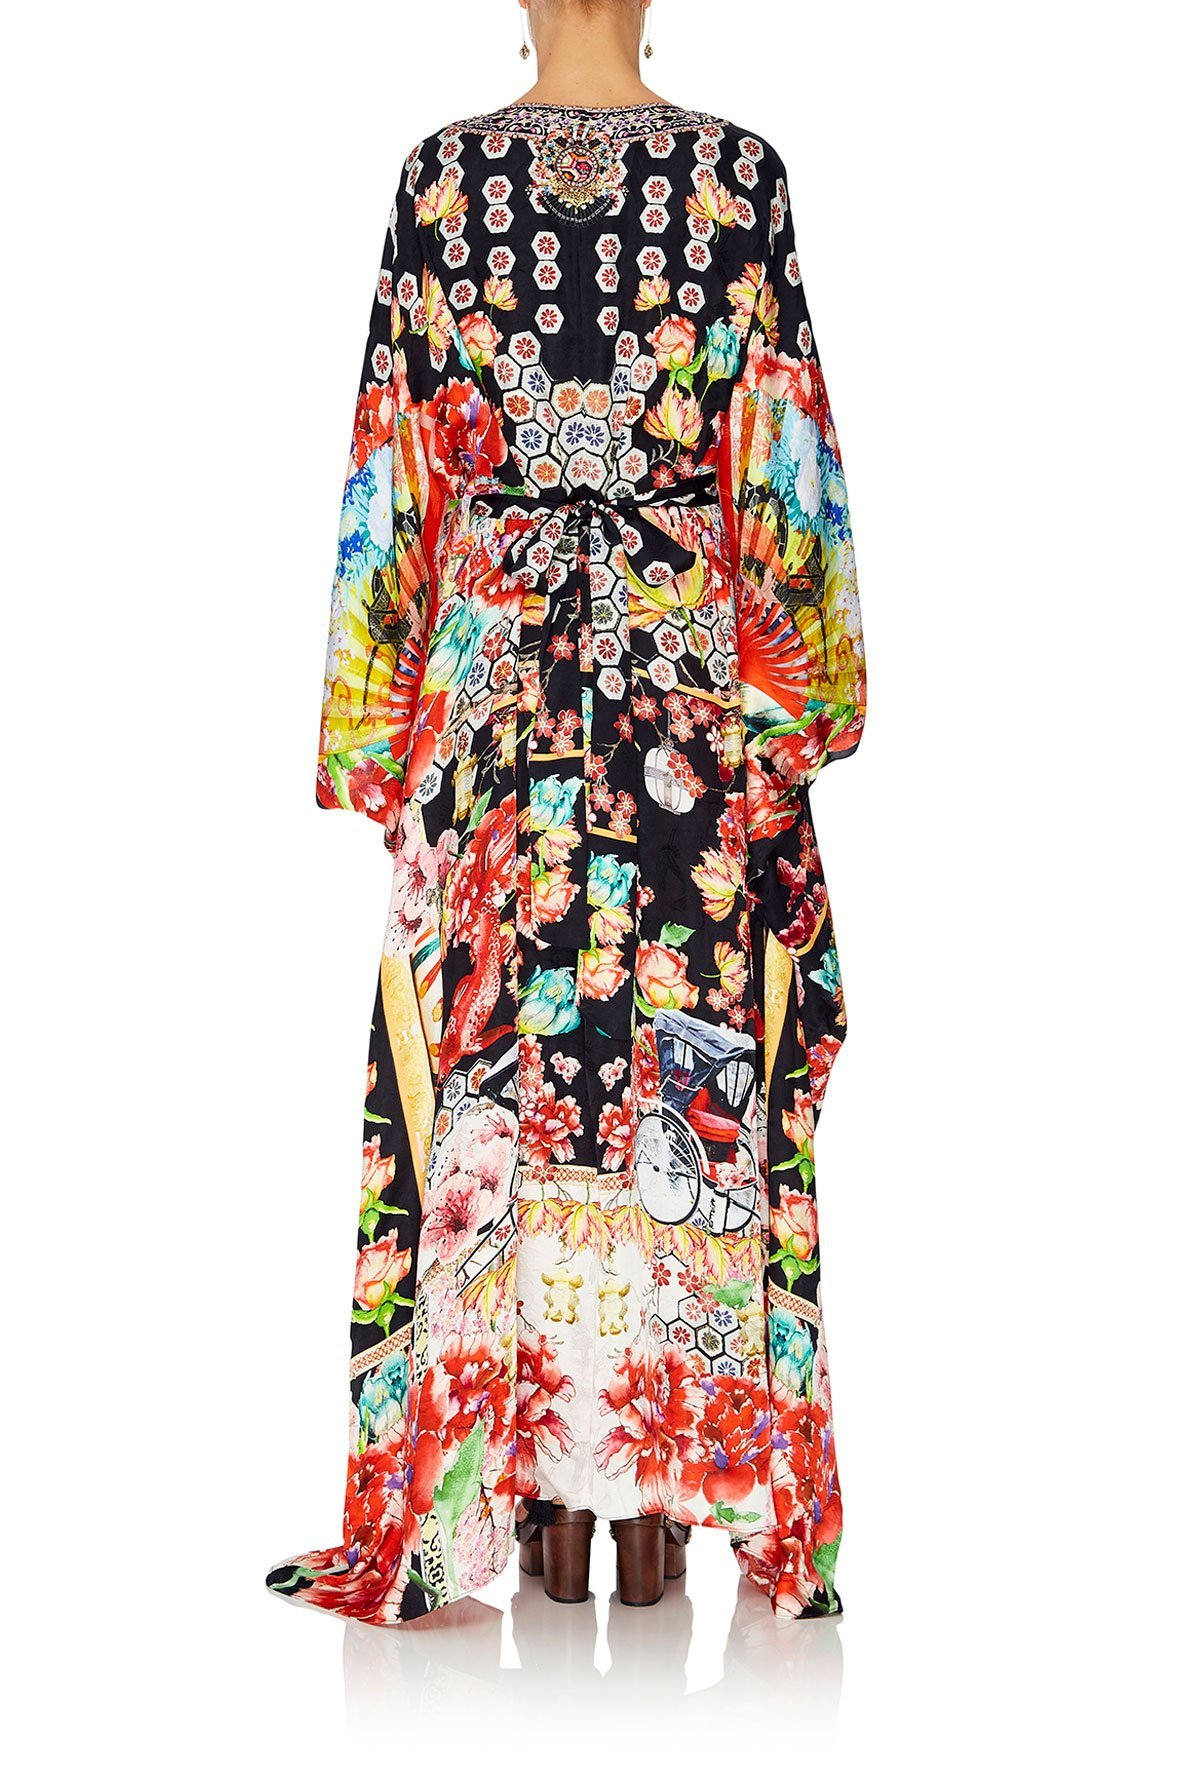 camilla_long_kaftan_with_waistabnd_painted_land_7_501e7564-55cd-4944-bf40-10429eb802b7_1024x1024@2x